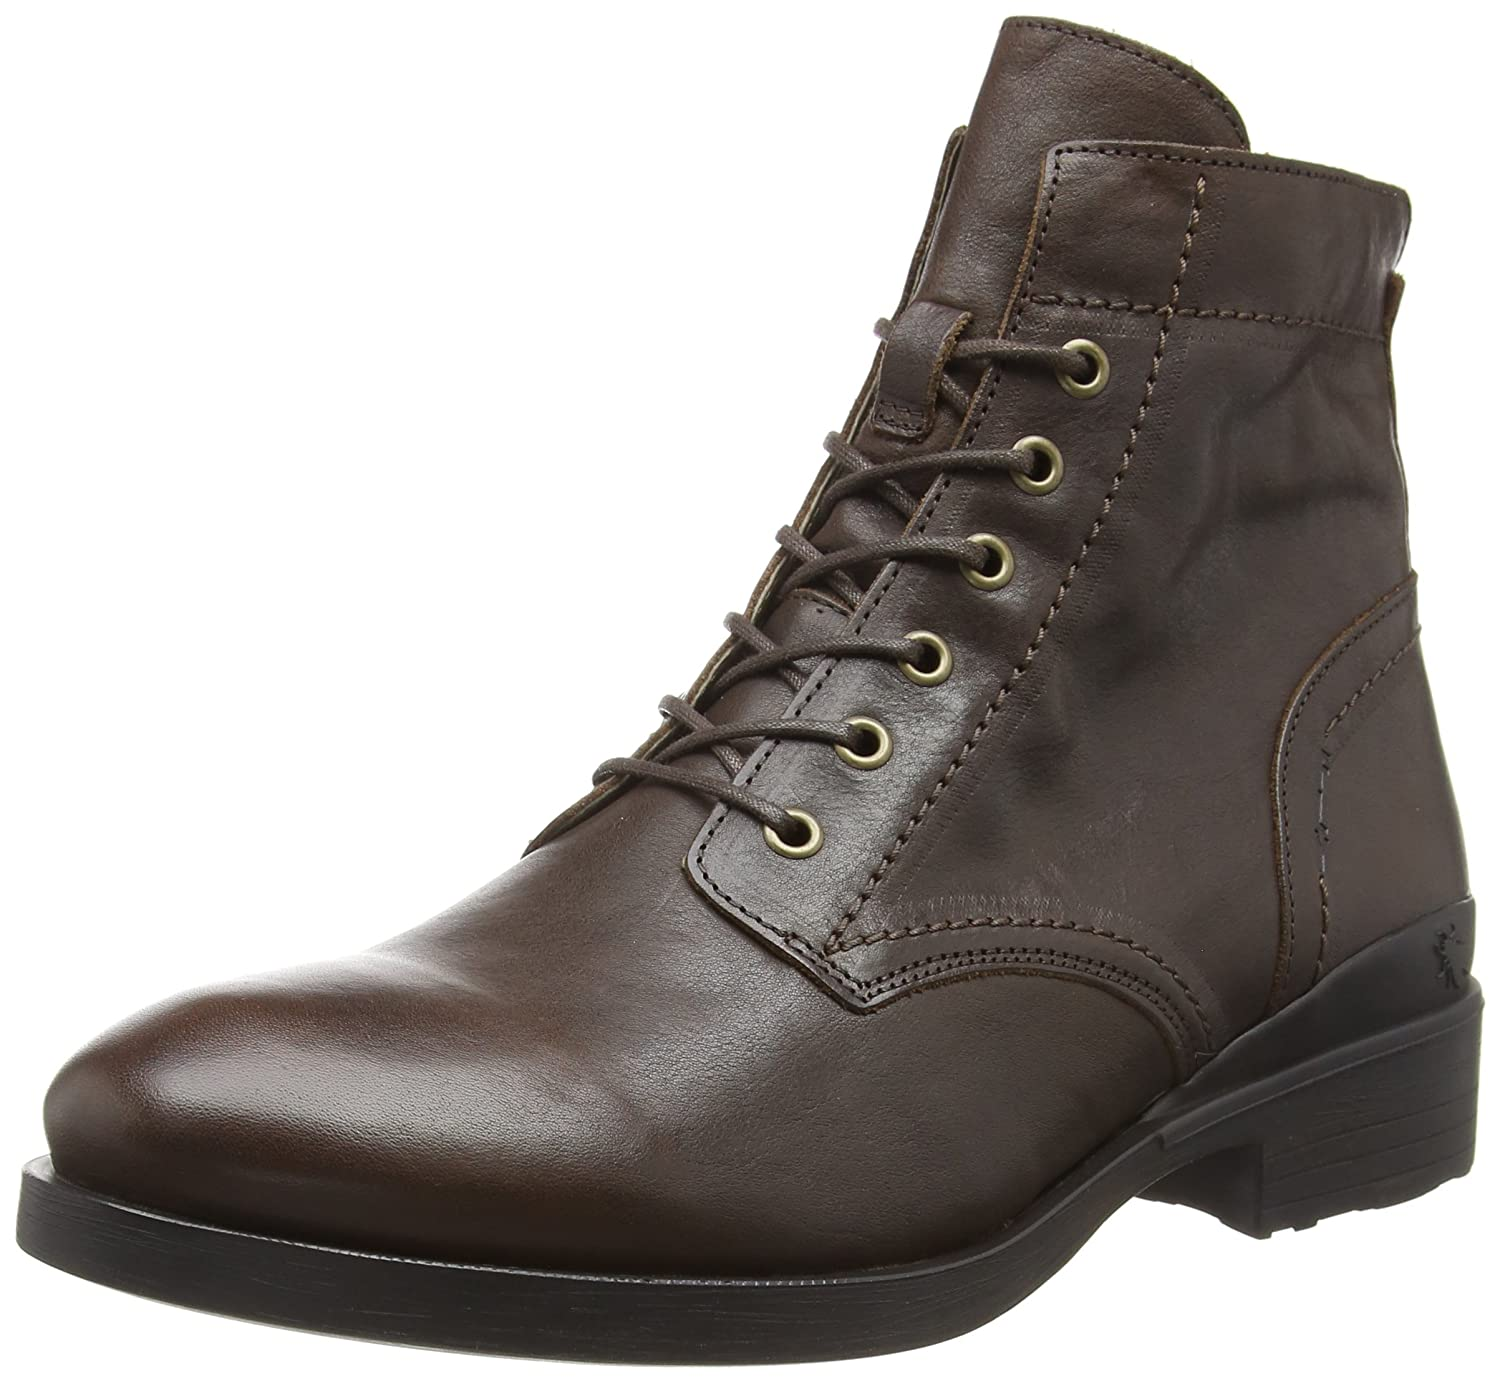 TALLA 41 EU. Fly London Marc343fly, Botas Clasicas para Hombre, Marrón (Brown 002), 41 EU